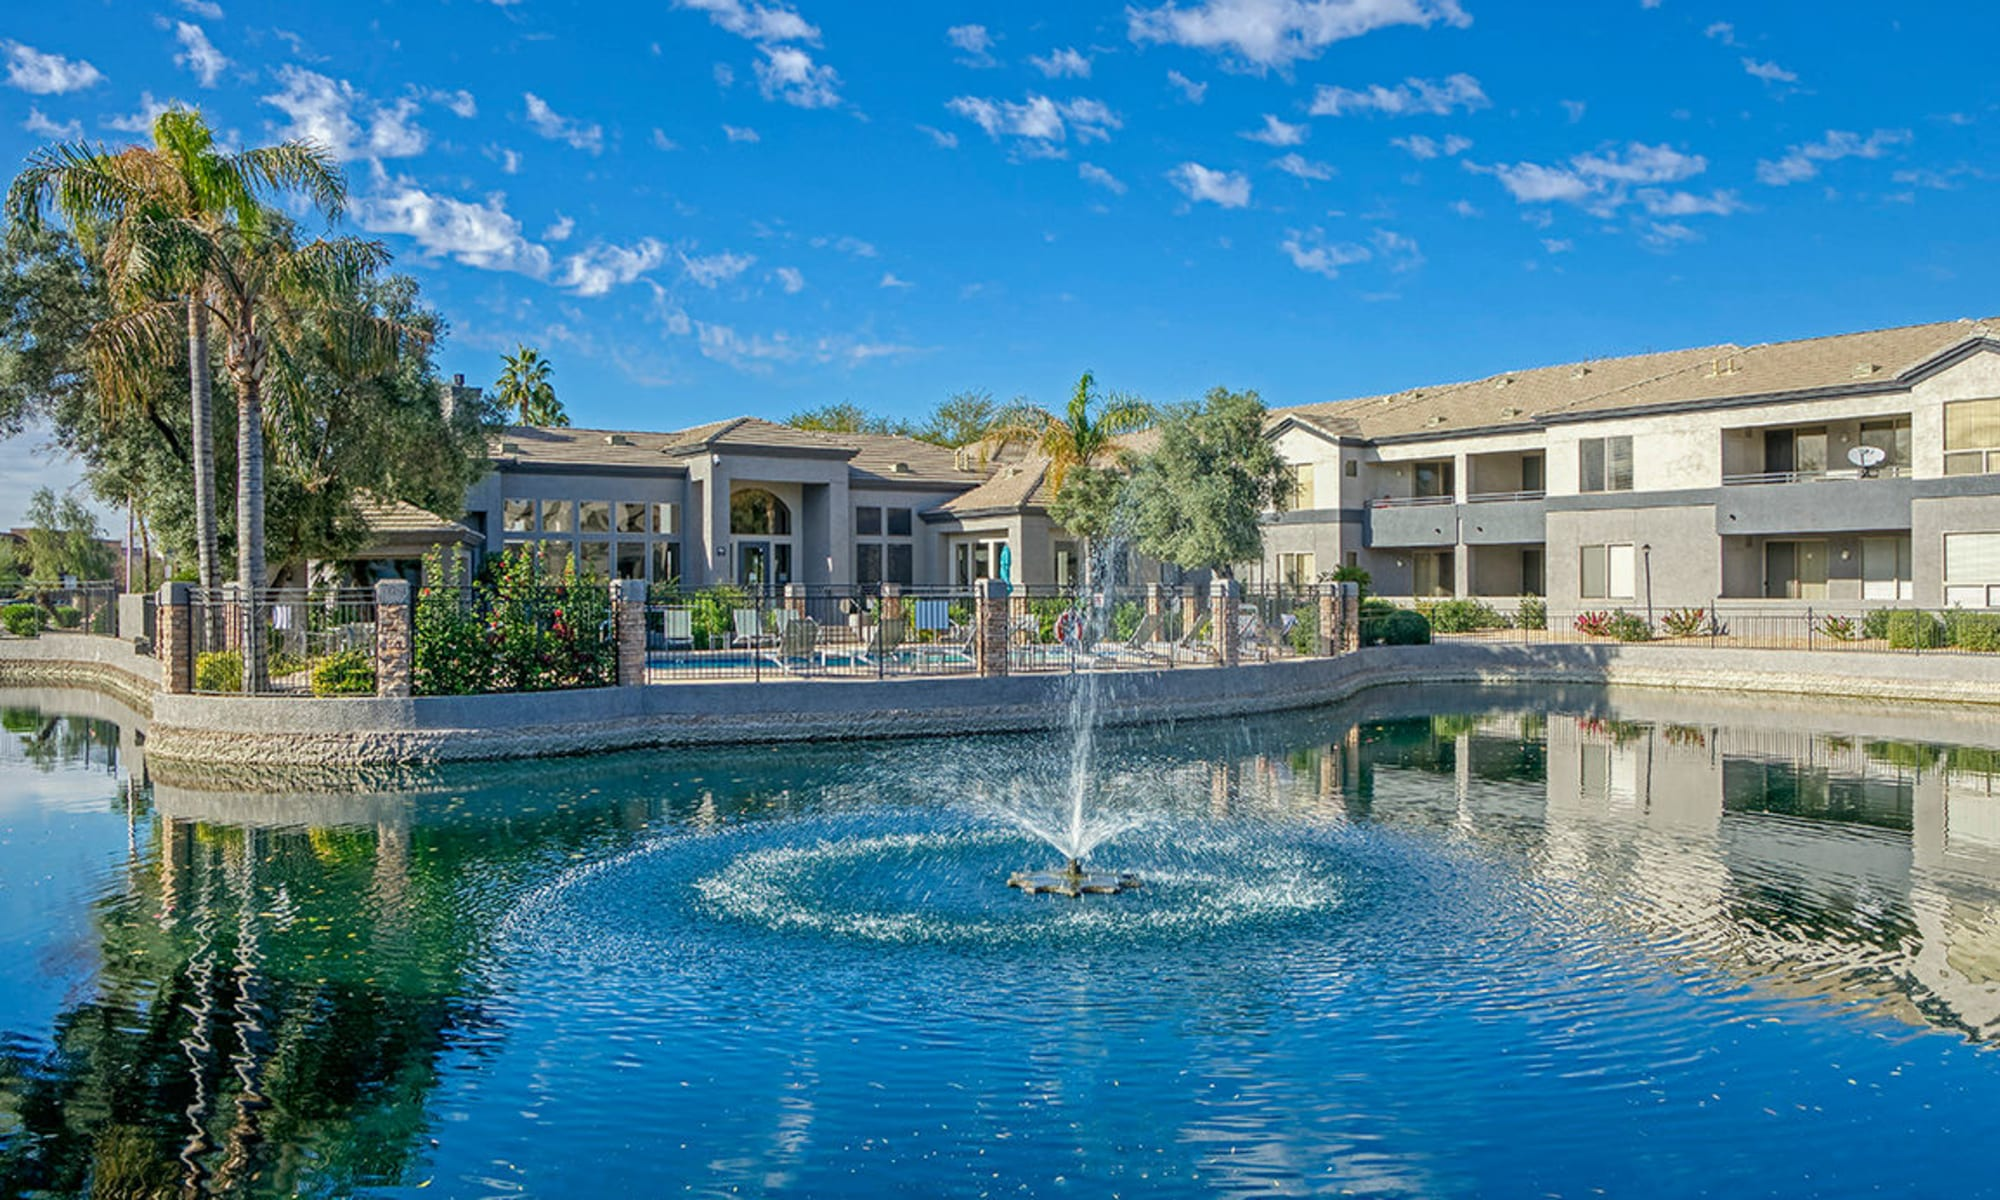 Laguna at Arrowhead Ranch apartments in Glendale, Arizona